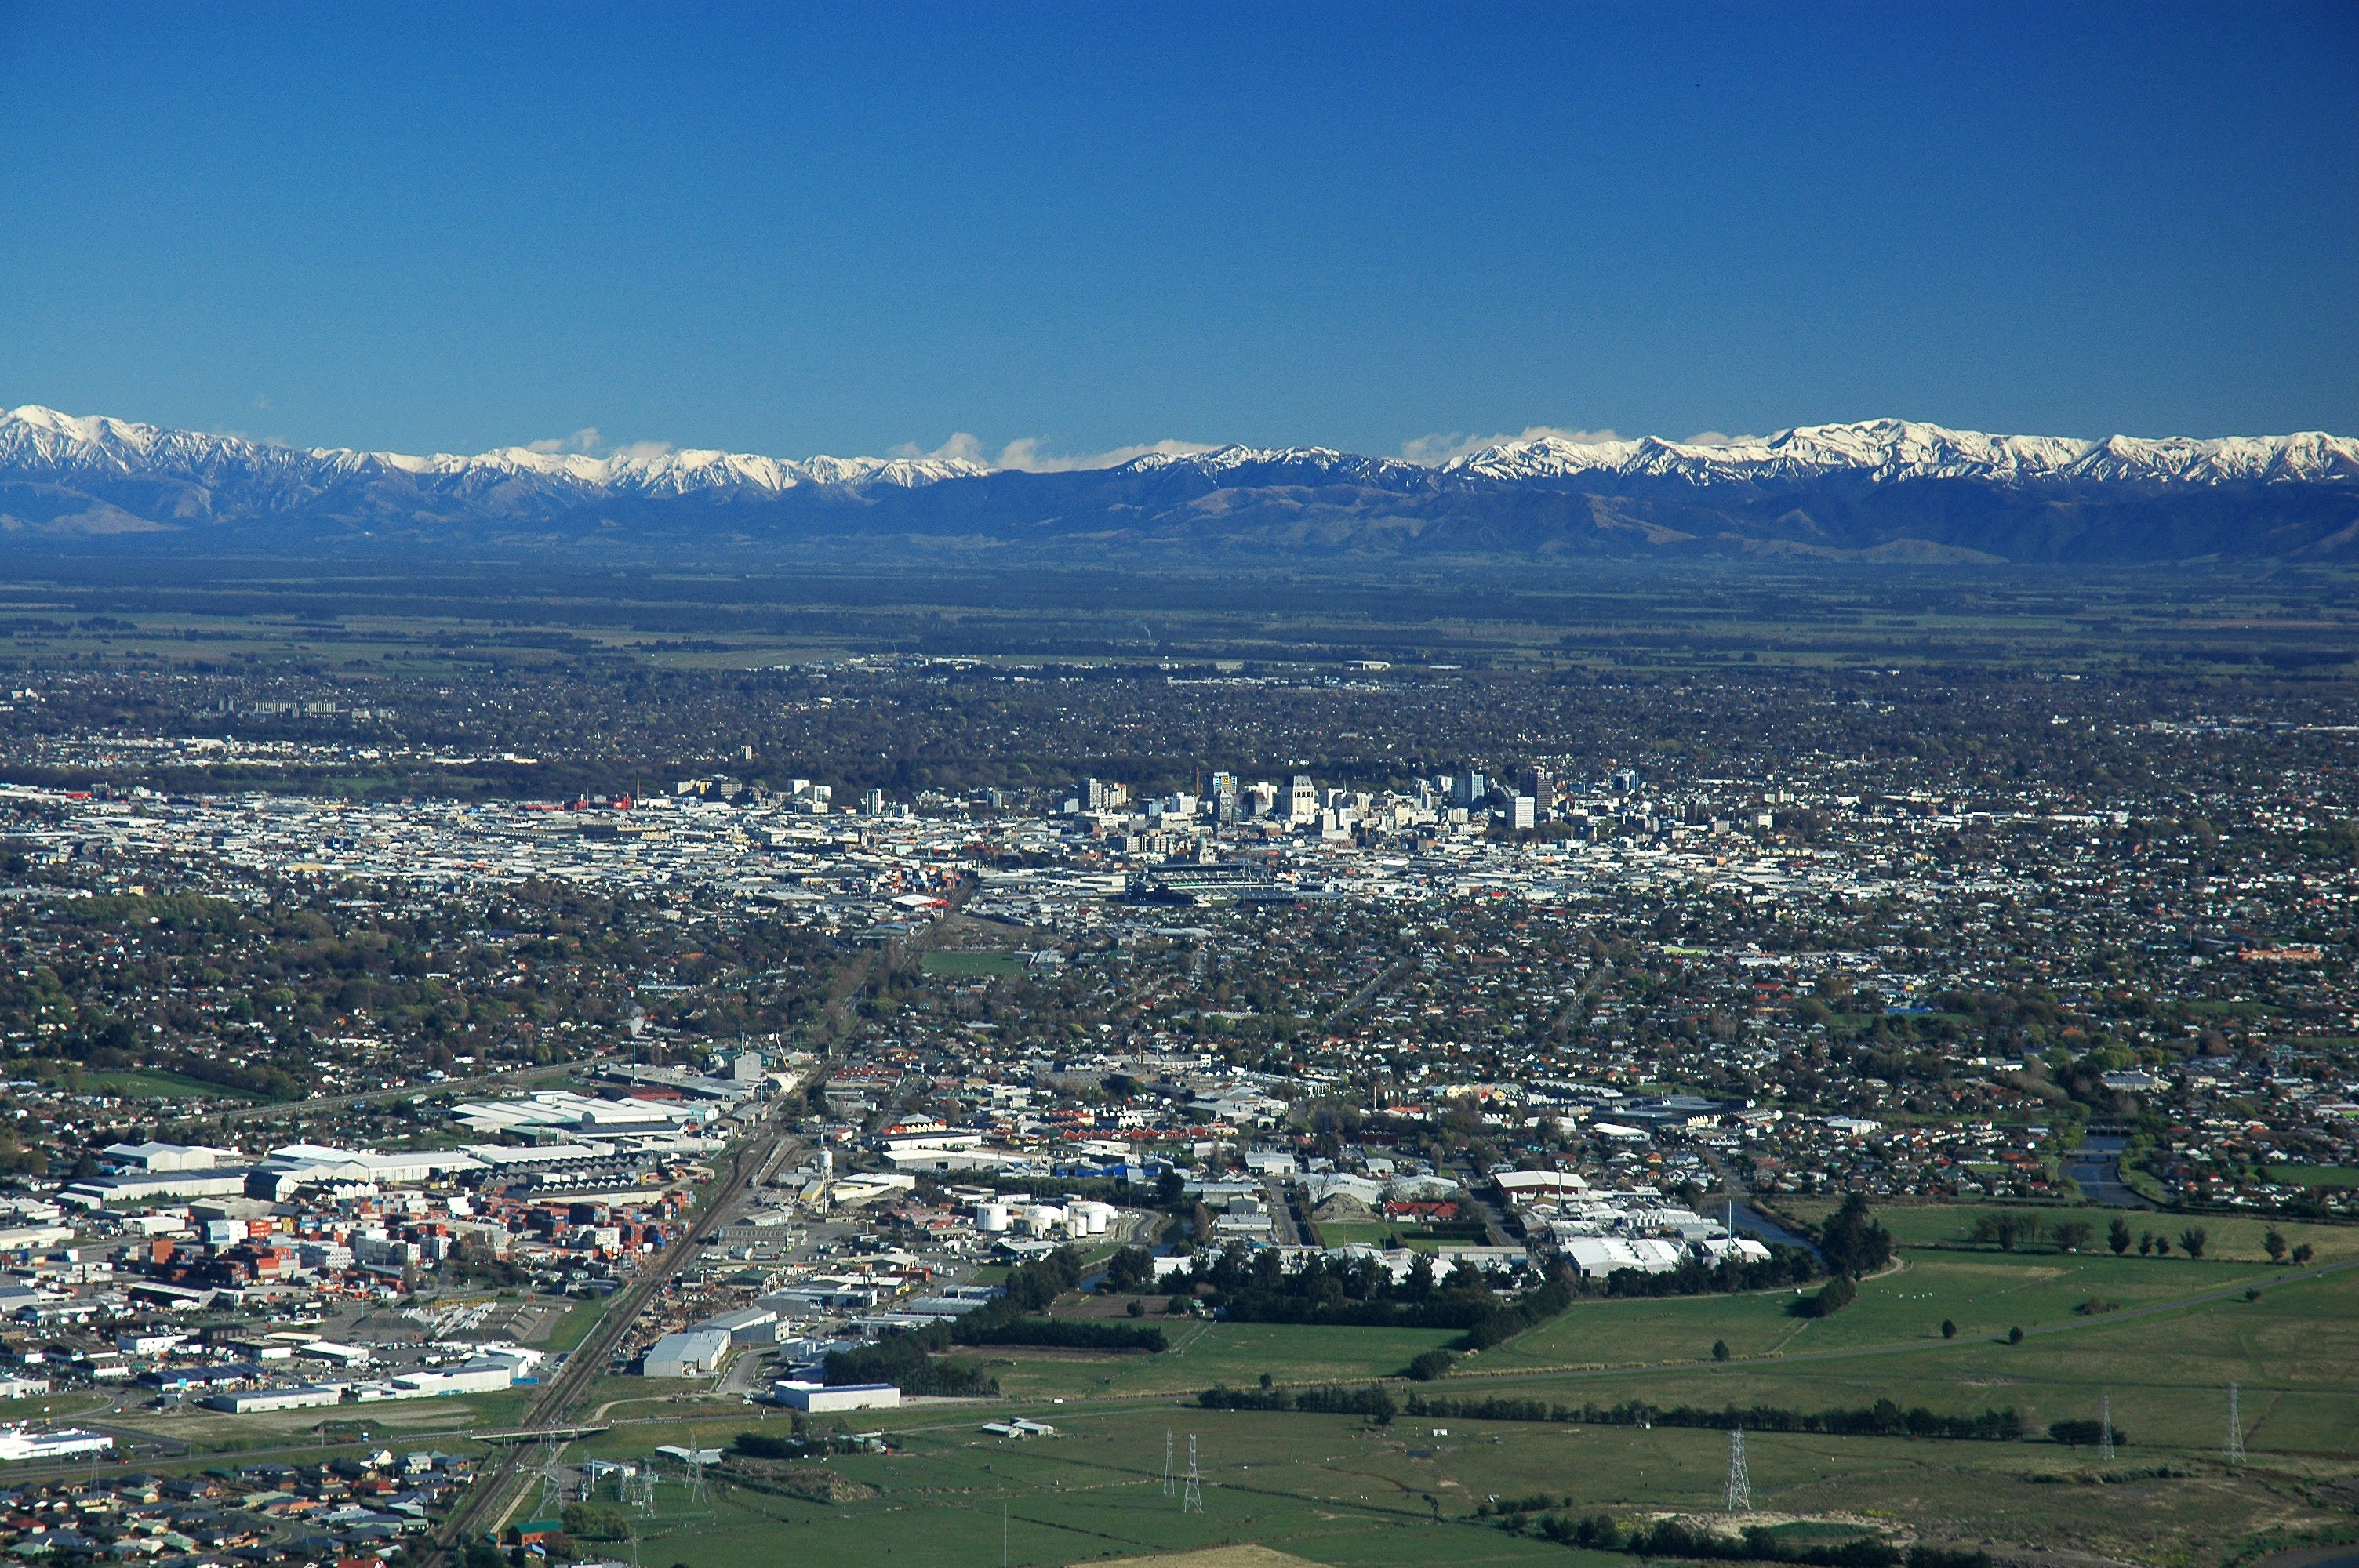 https://upload.wikimedia.org/wikipedia/commons/7/7e/Christchurch_City.jpg